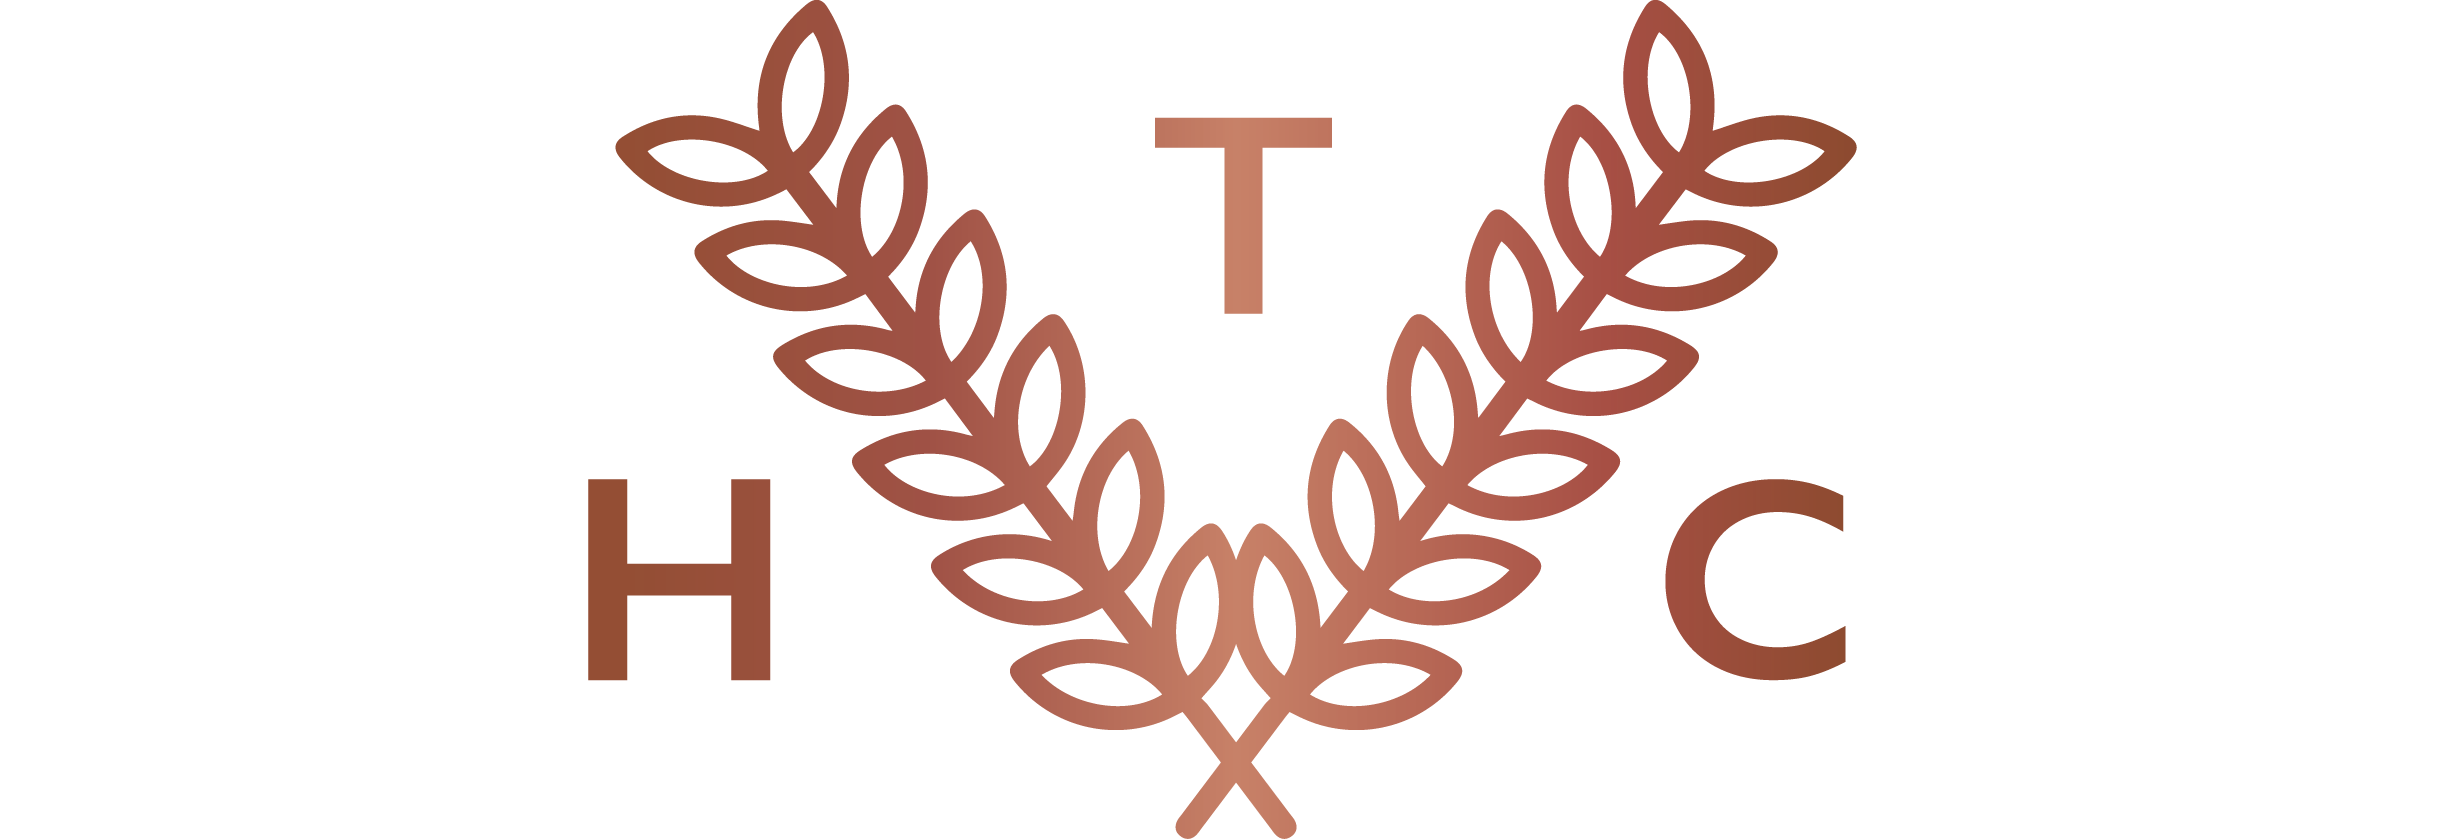 thyme consultancy symbol.png